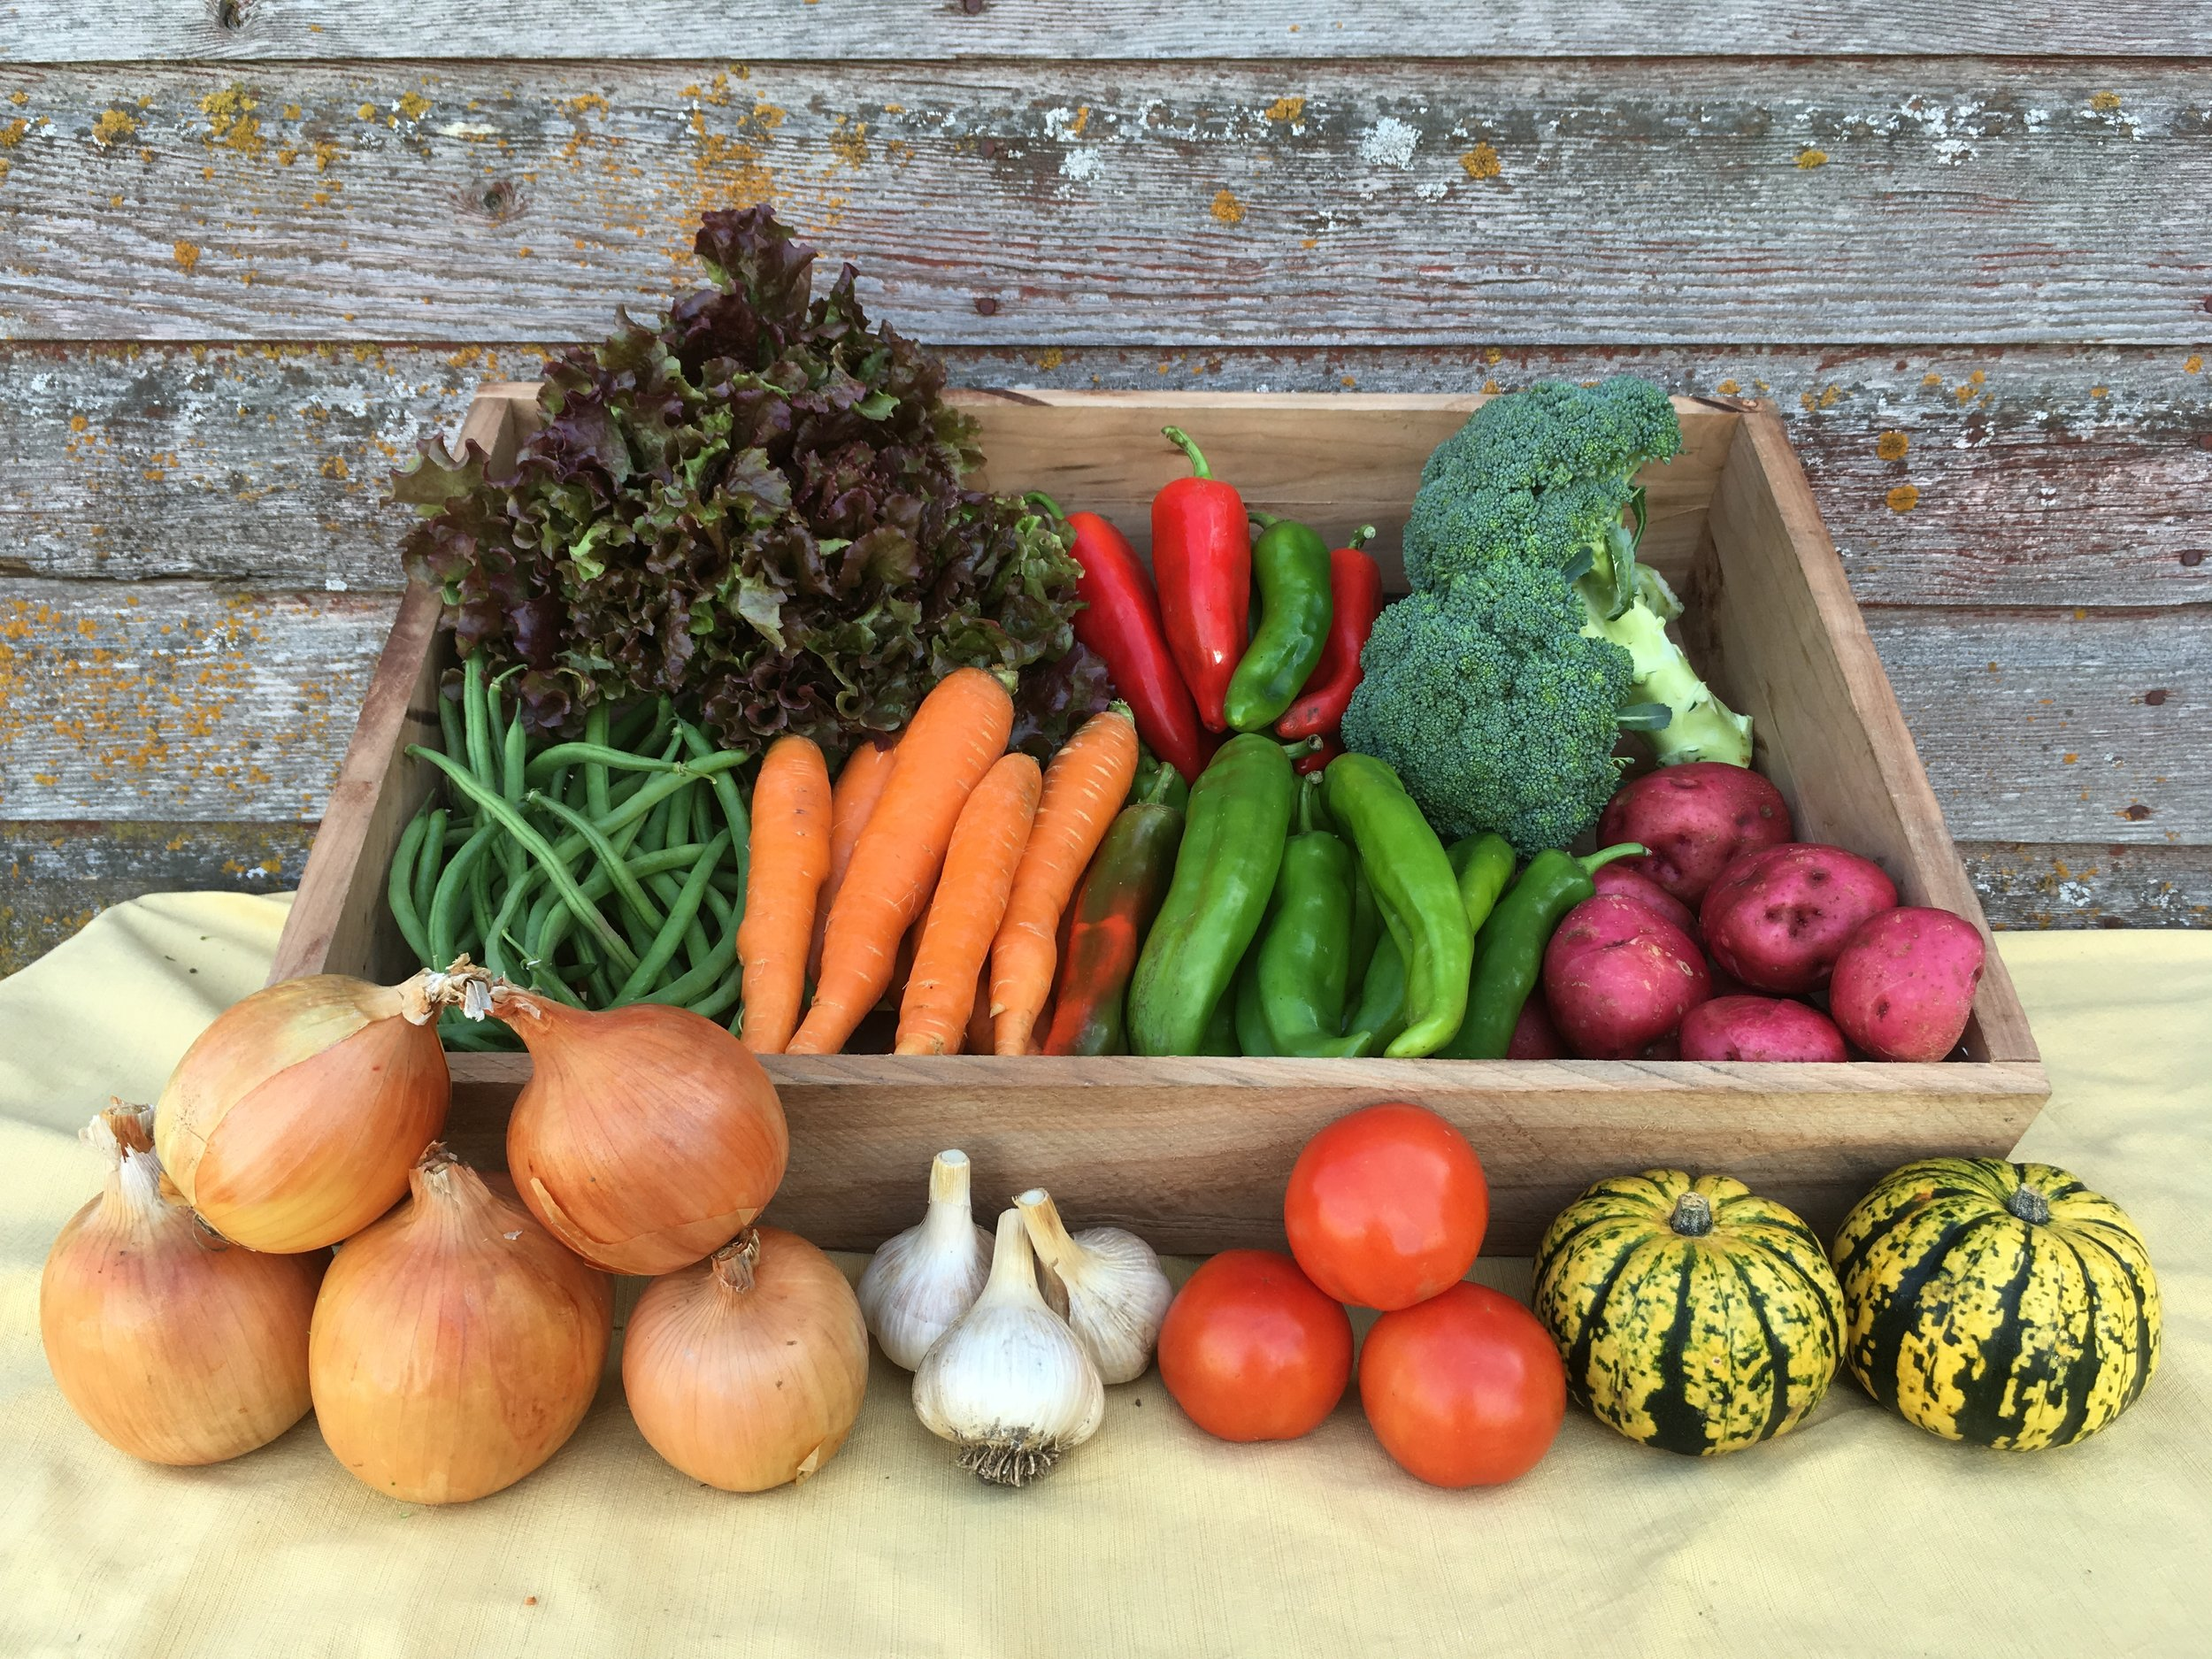 Click here for more information on our CSA box program